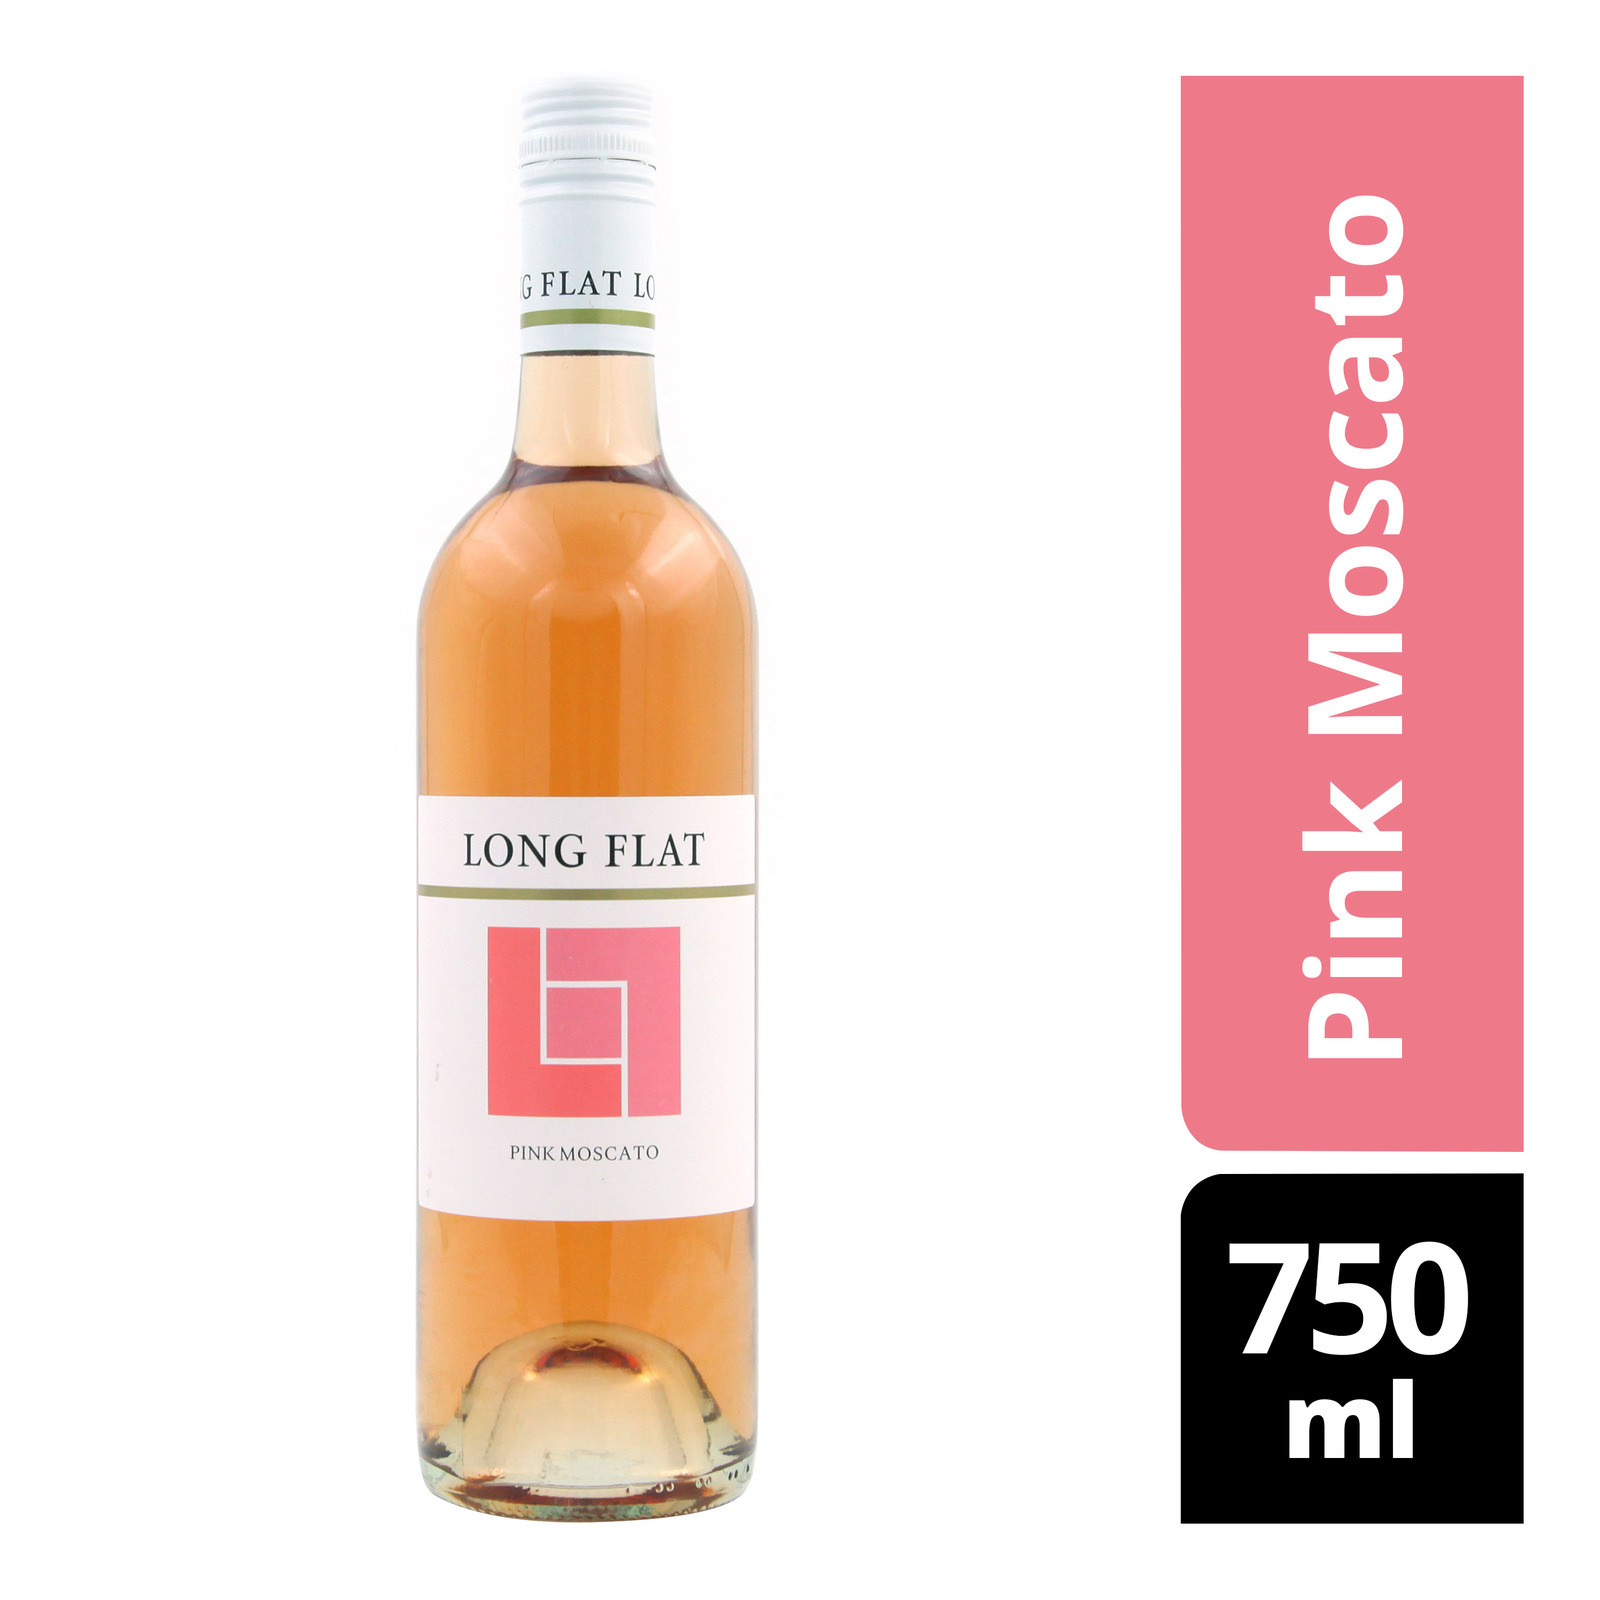 Long Flat White Wine - Pink Moscato